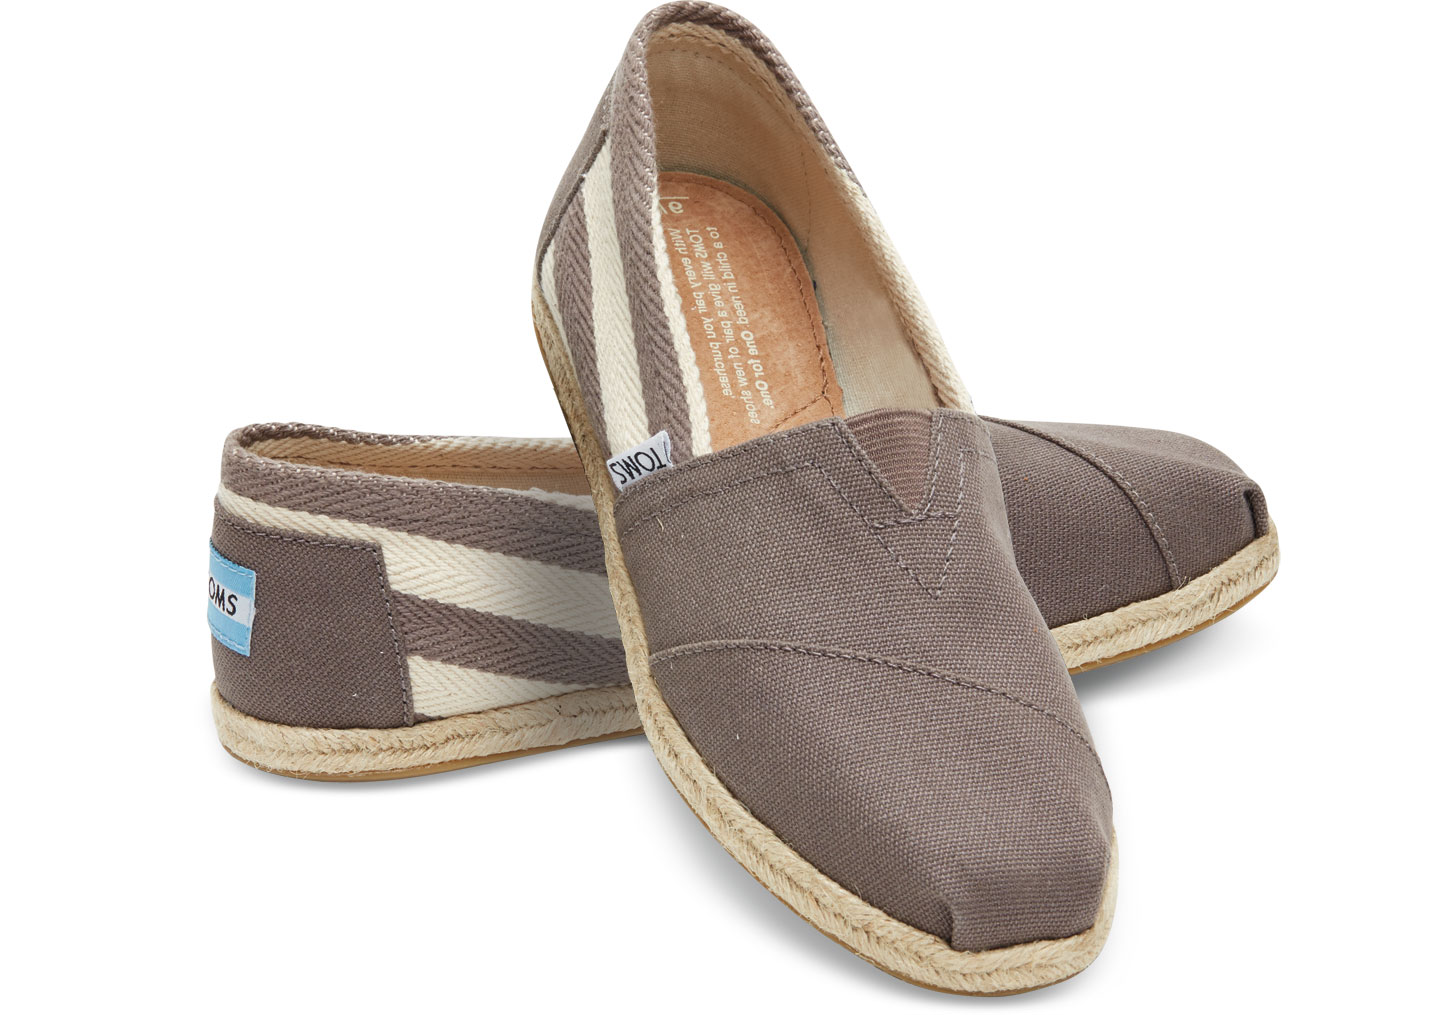 【TOMS】灰色寬條紋學院風平底鞋  Dark Grey Stripe University Women's Classics 0